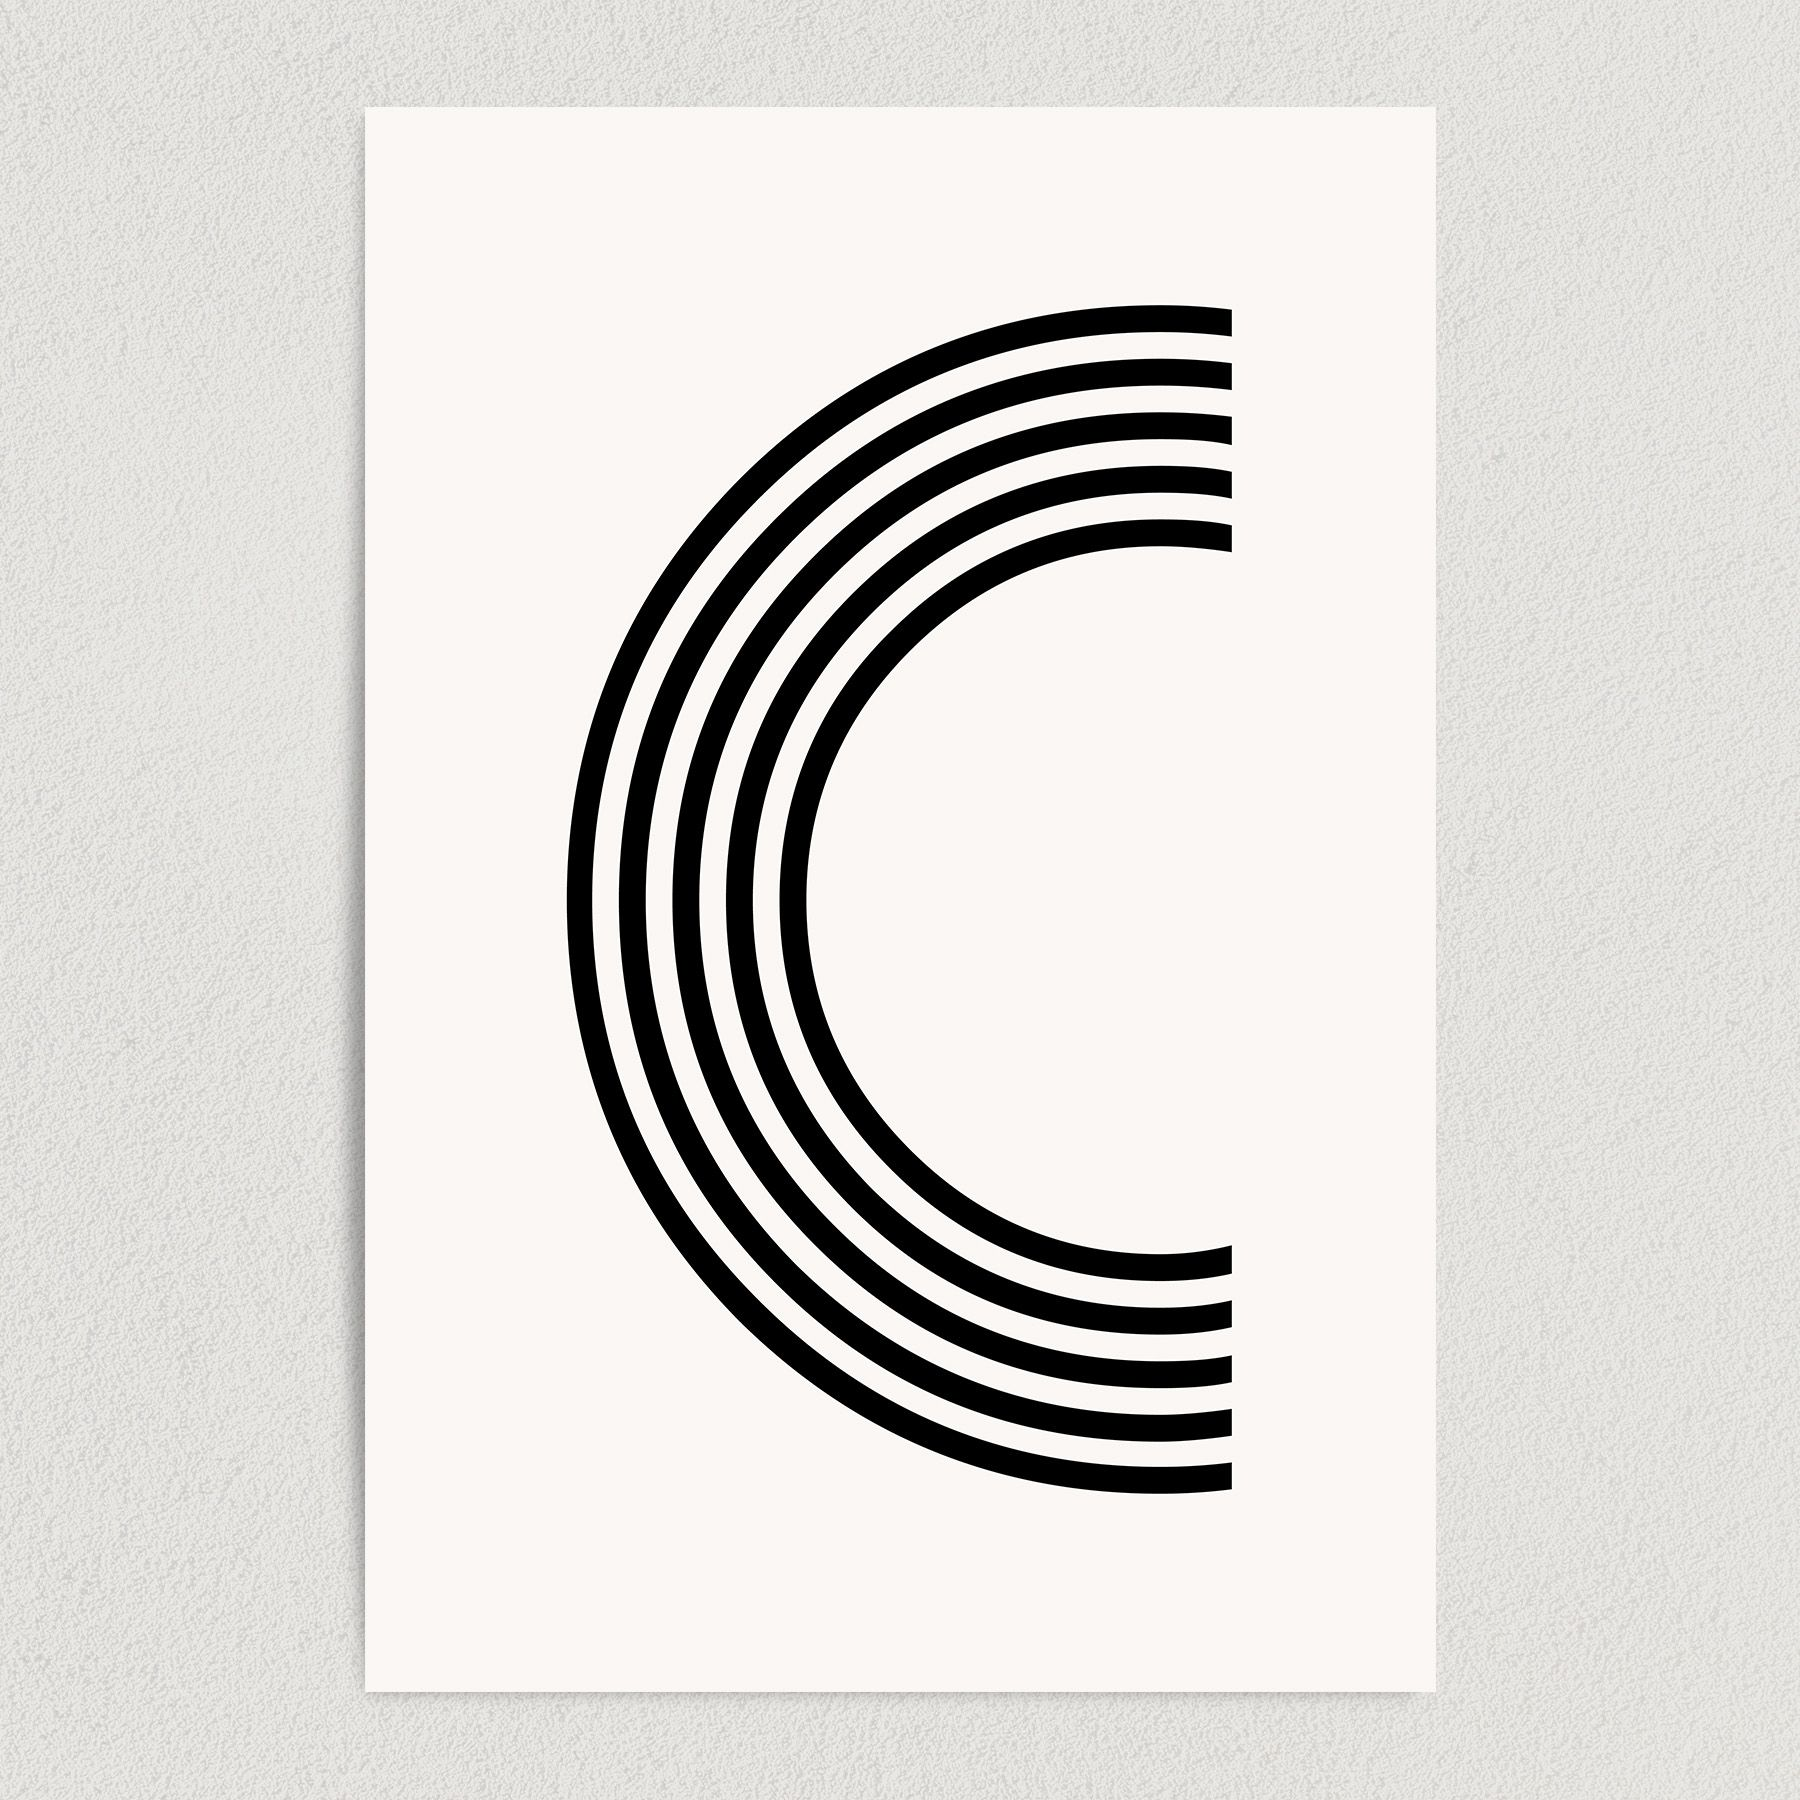 Letter C Modern Typography Art Print Poster 12″ x 18″ Wall Art M2162